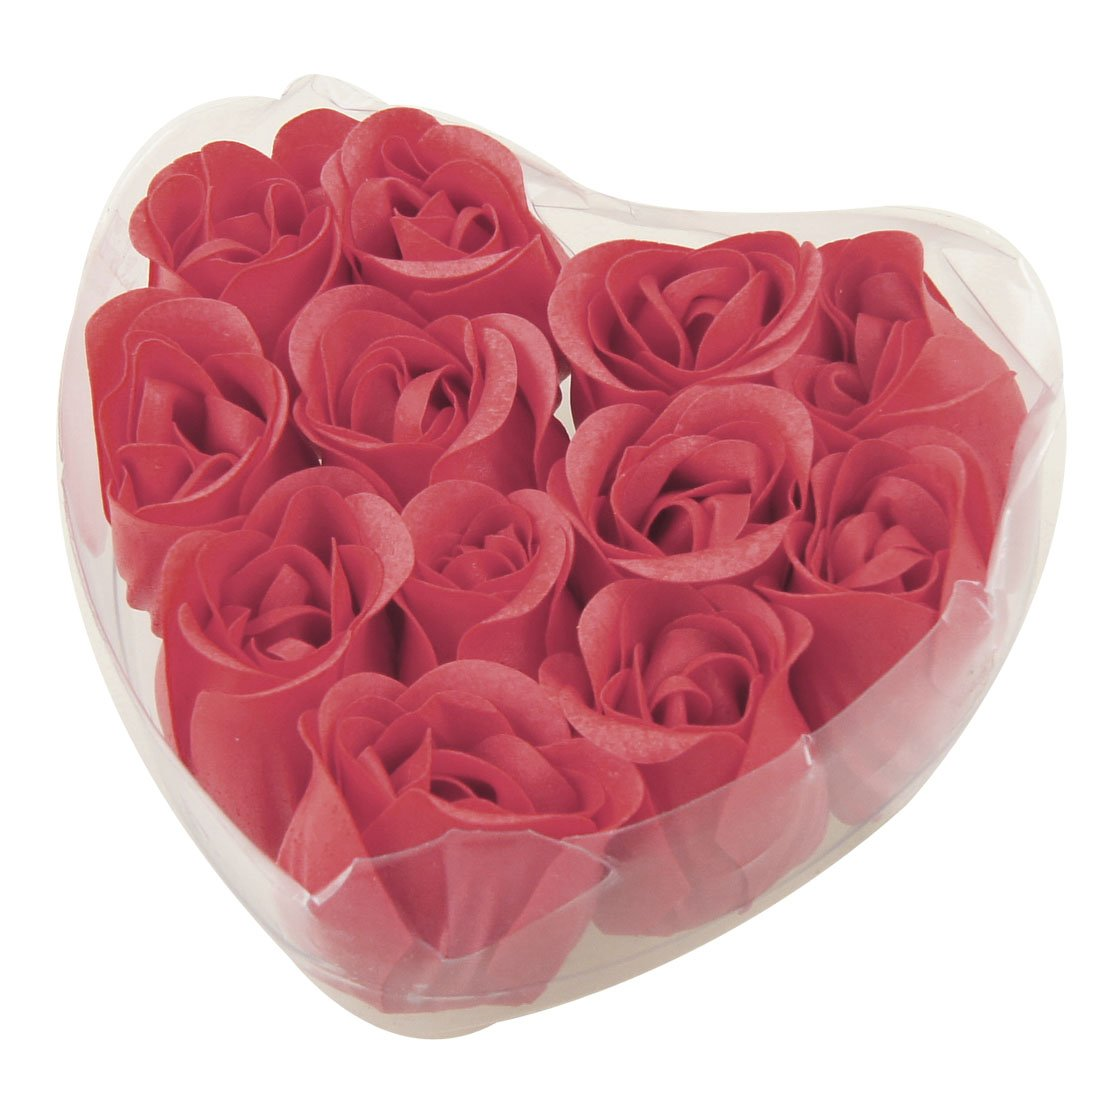 JEYL wholesale New 12 Pcs Red Fragrant Rose Bud Petal Soap Wedding Favor + Heart Shape Box(China (Mainland))